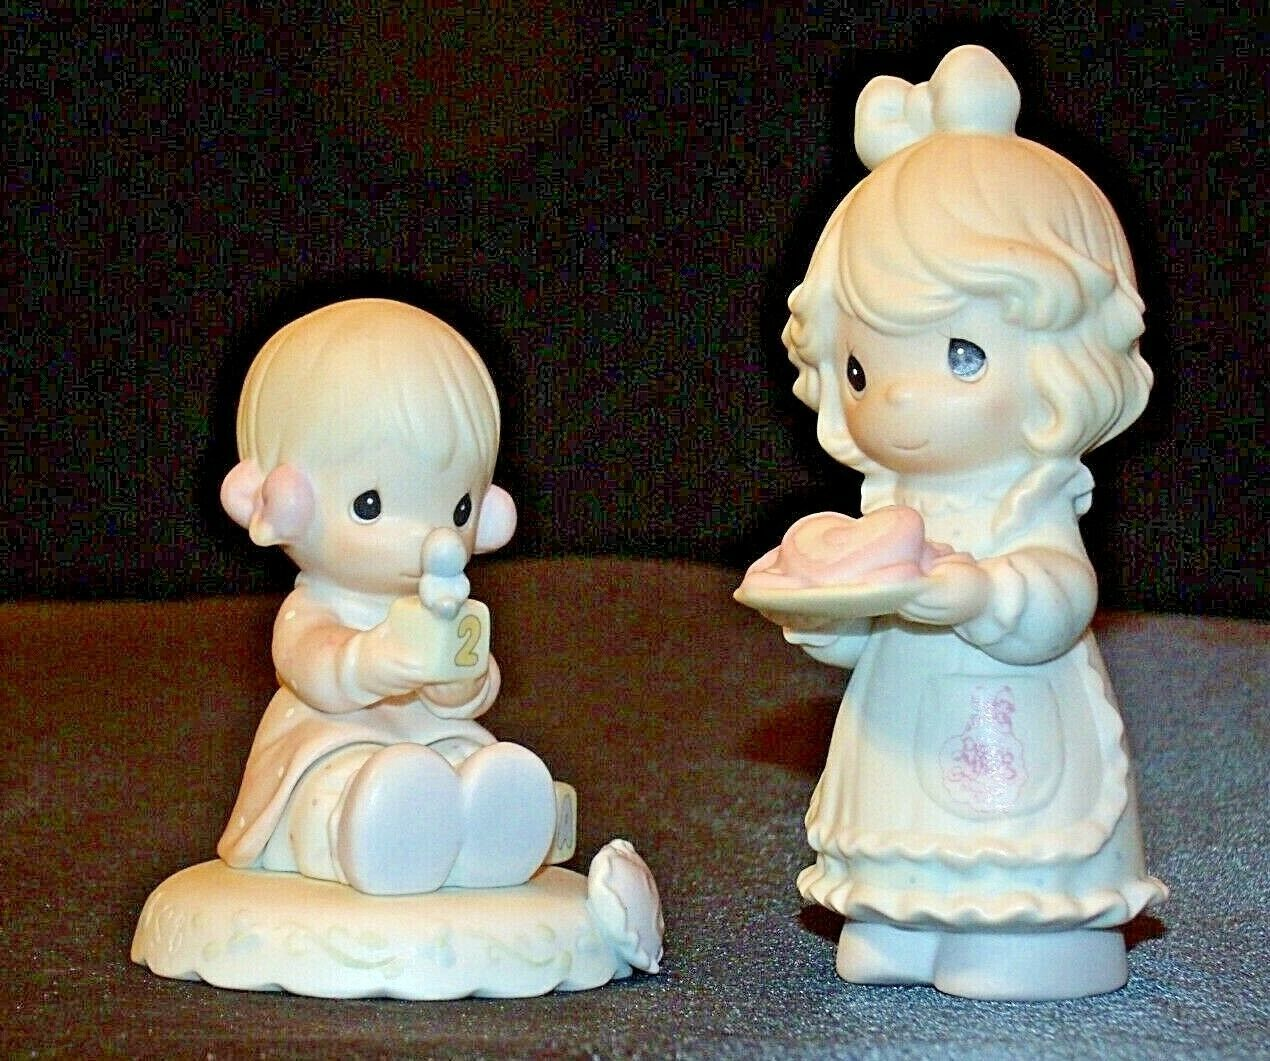 Precious Figurines Moments 2 Pieces AA-191819 Vintage Collectible